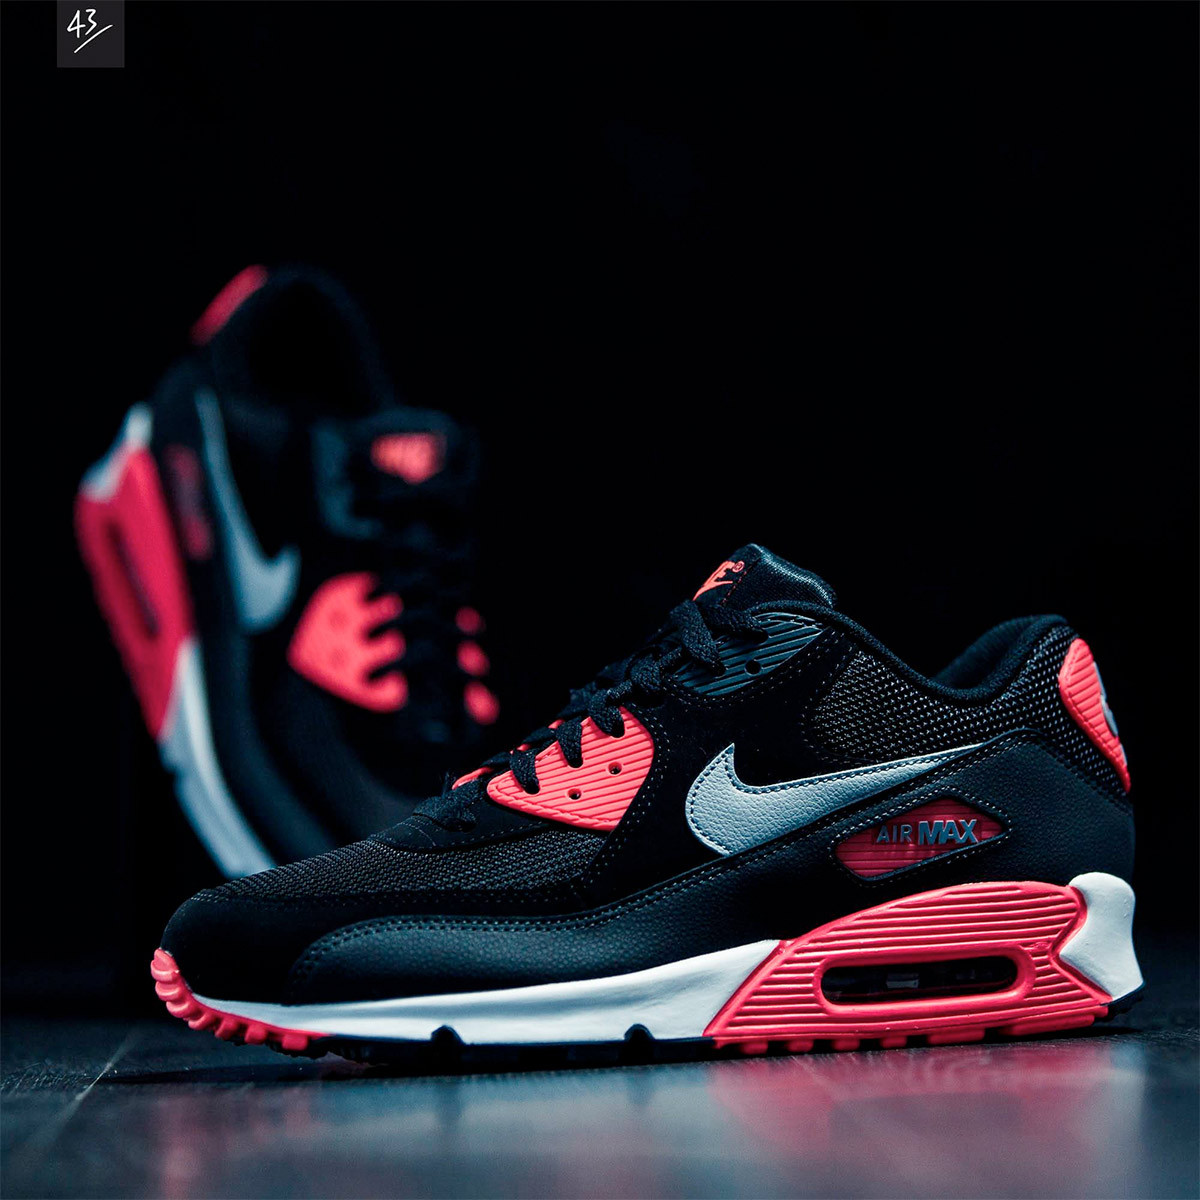 Air Max 90 Essential Magnífica Nike Air Max 90 Essential Black Infrared Of 36  Adorable Air Max 90 Essential